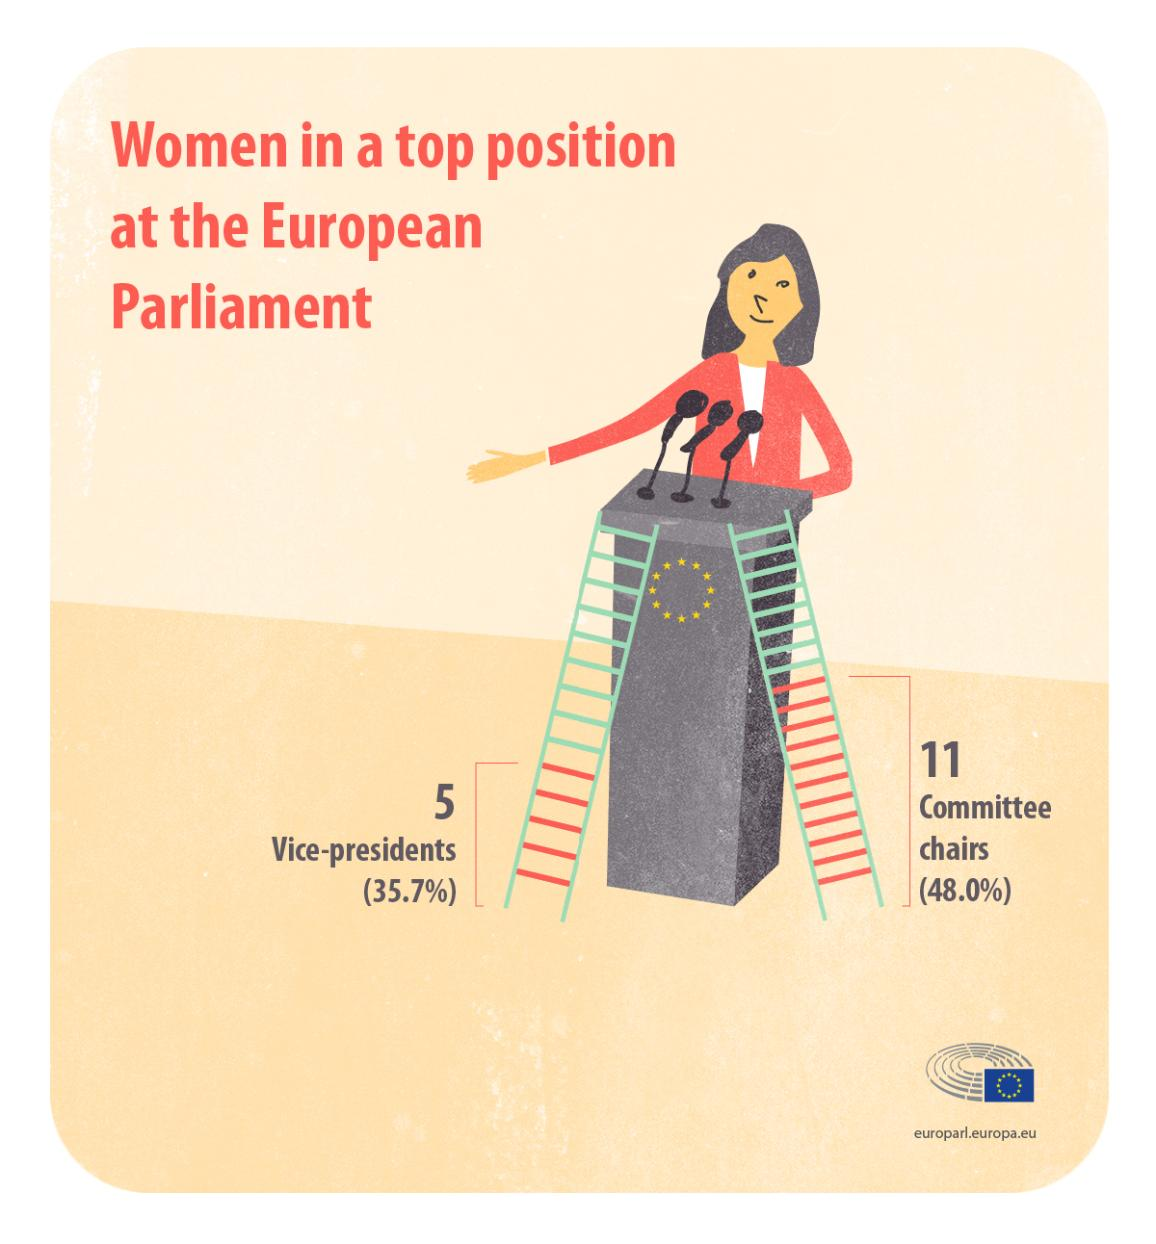 Infographic on women in top position at the European Parliament